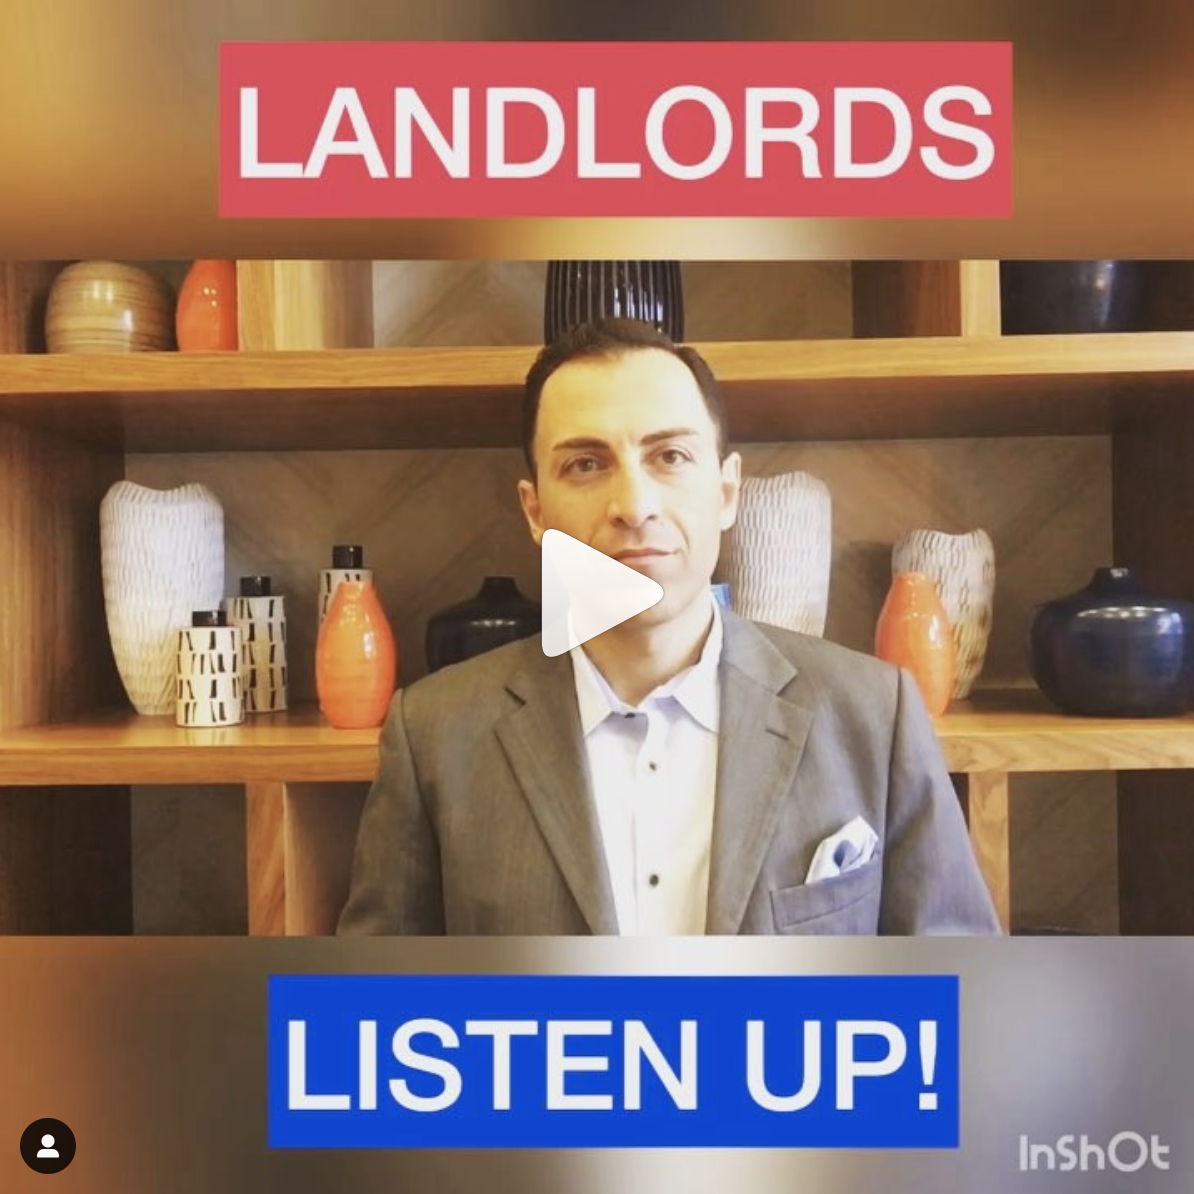 Landlords Listen Up!